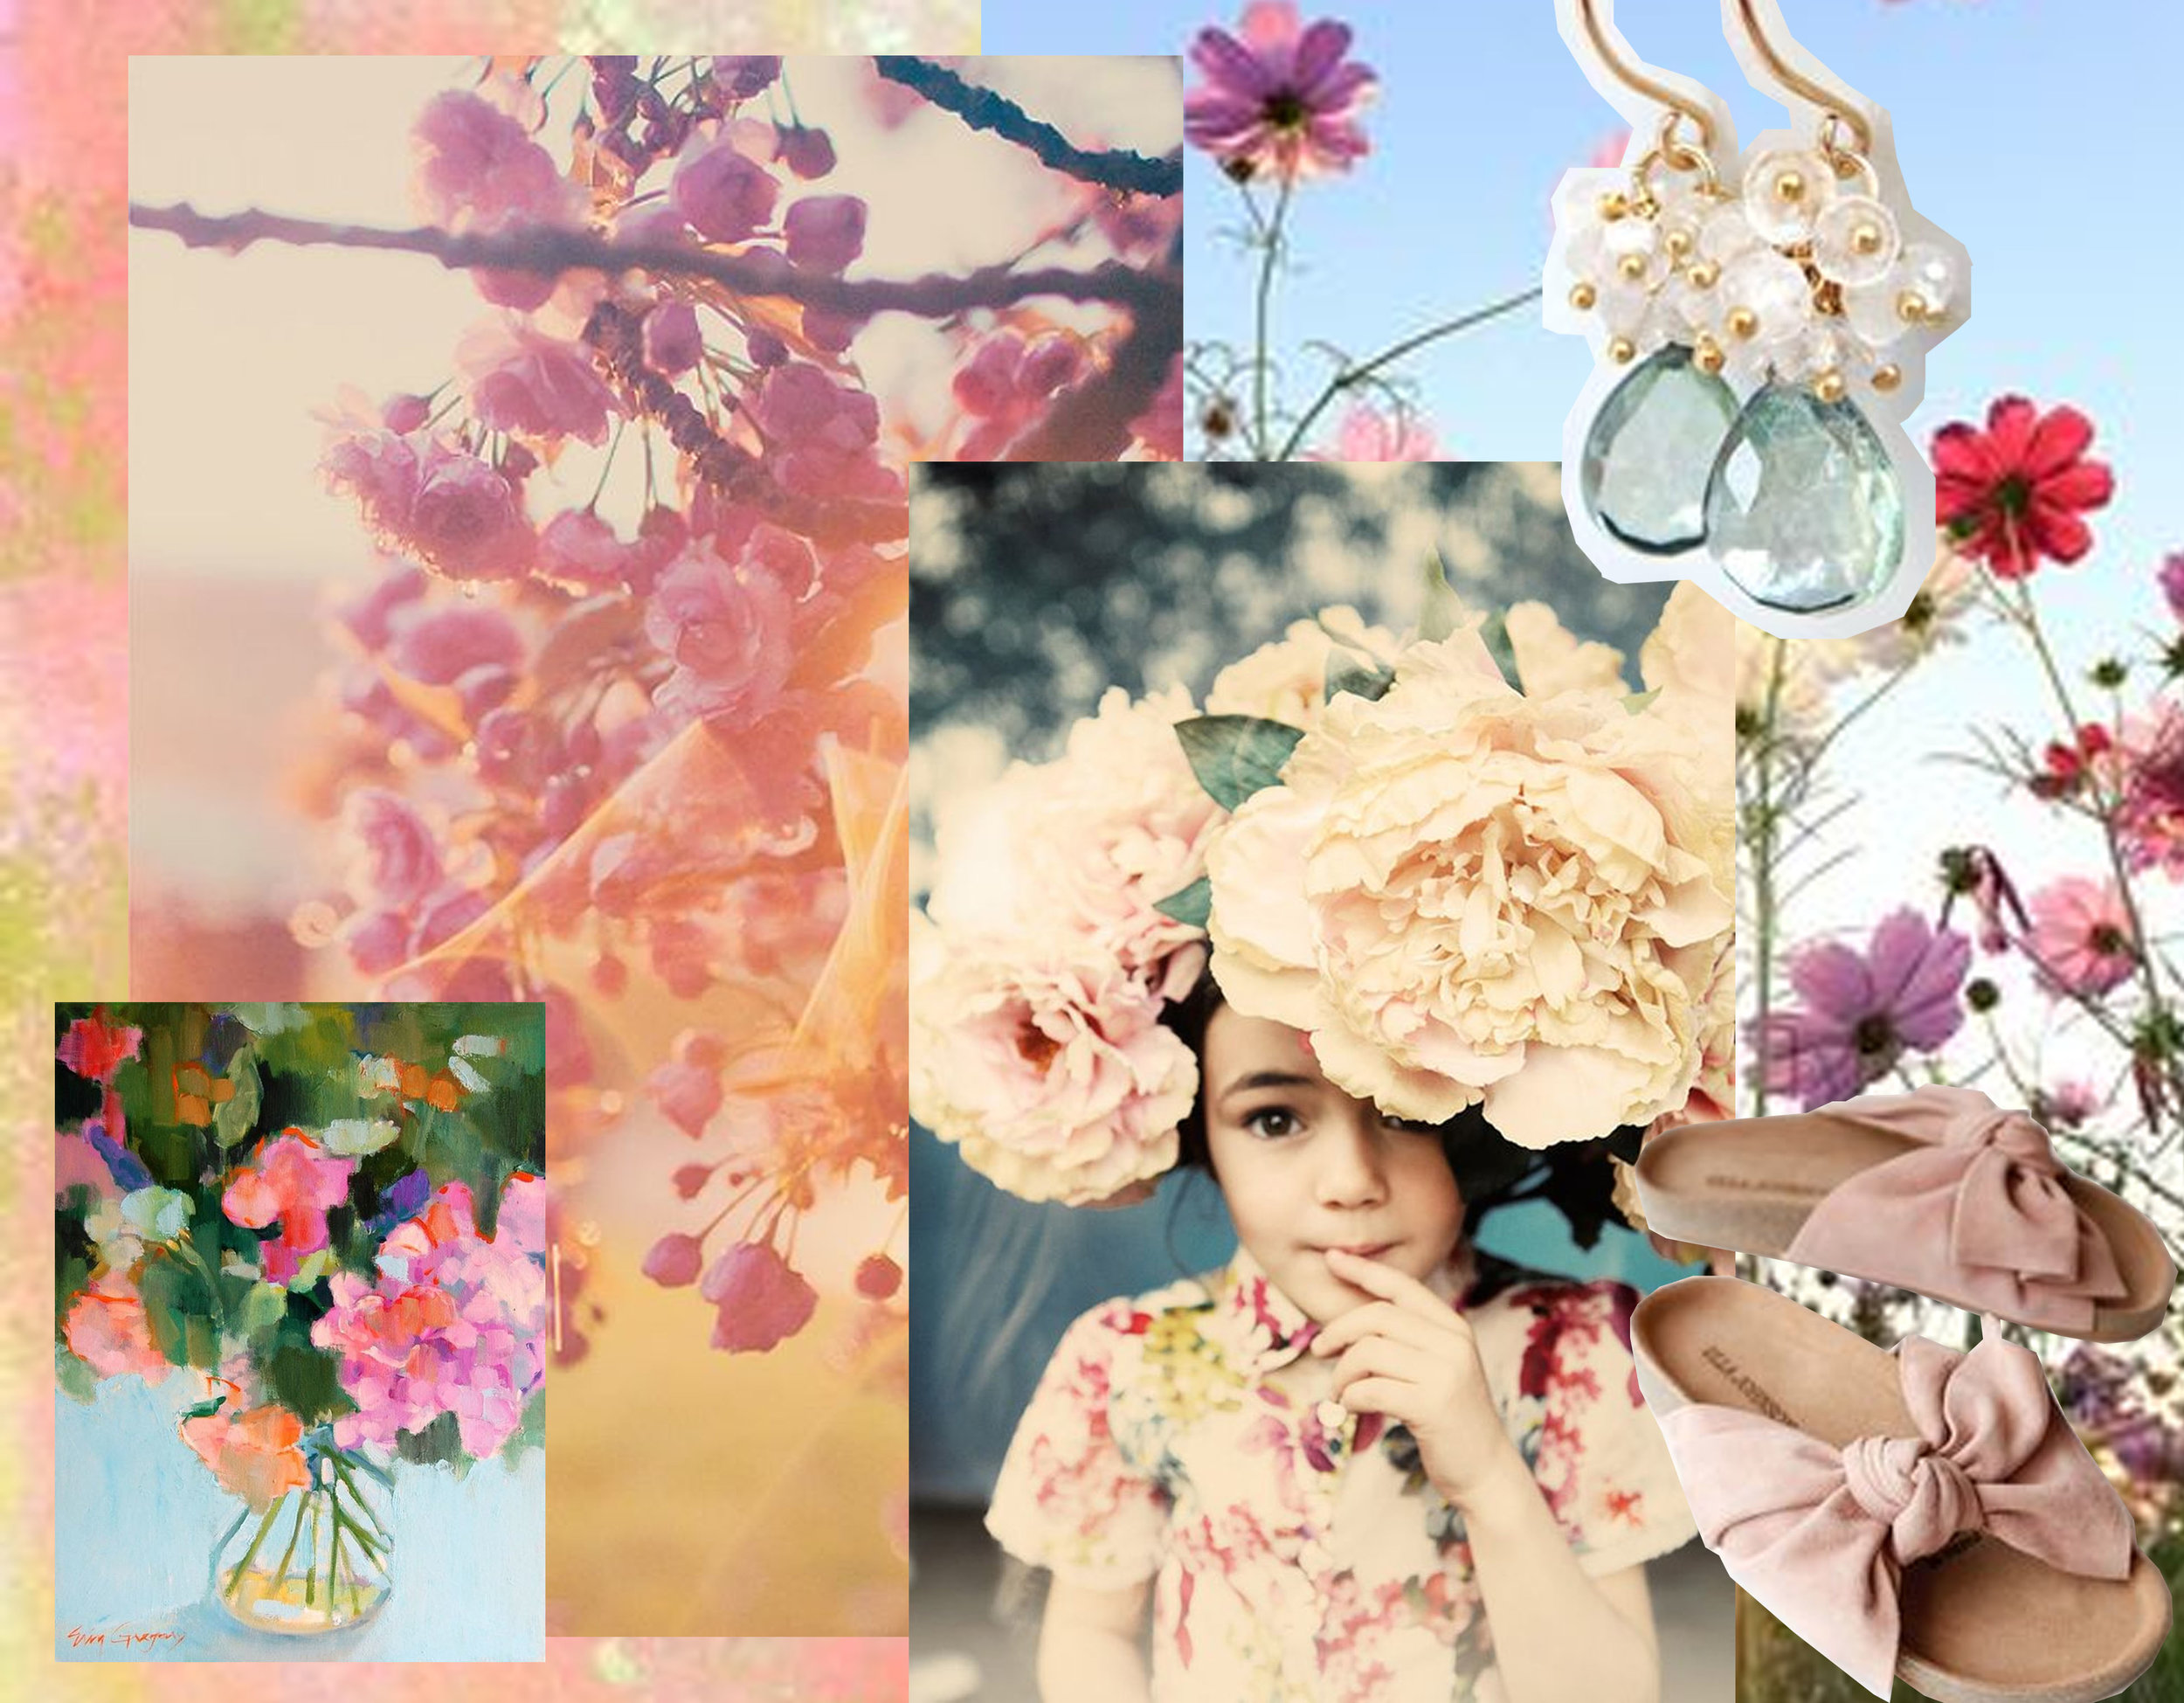 painting  Erin Gregory - blossom via  Birch & Willow  - little girl  Pinterest  - ear rings  Aubepin  - shoes  Mille  - Cosmos Flowers via  500px